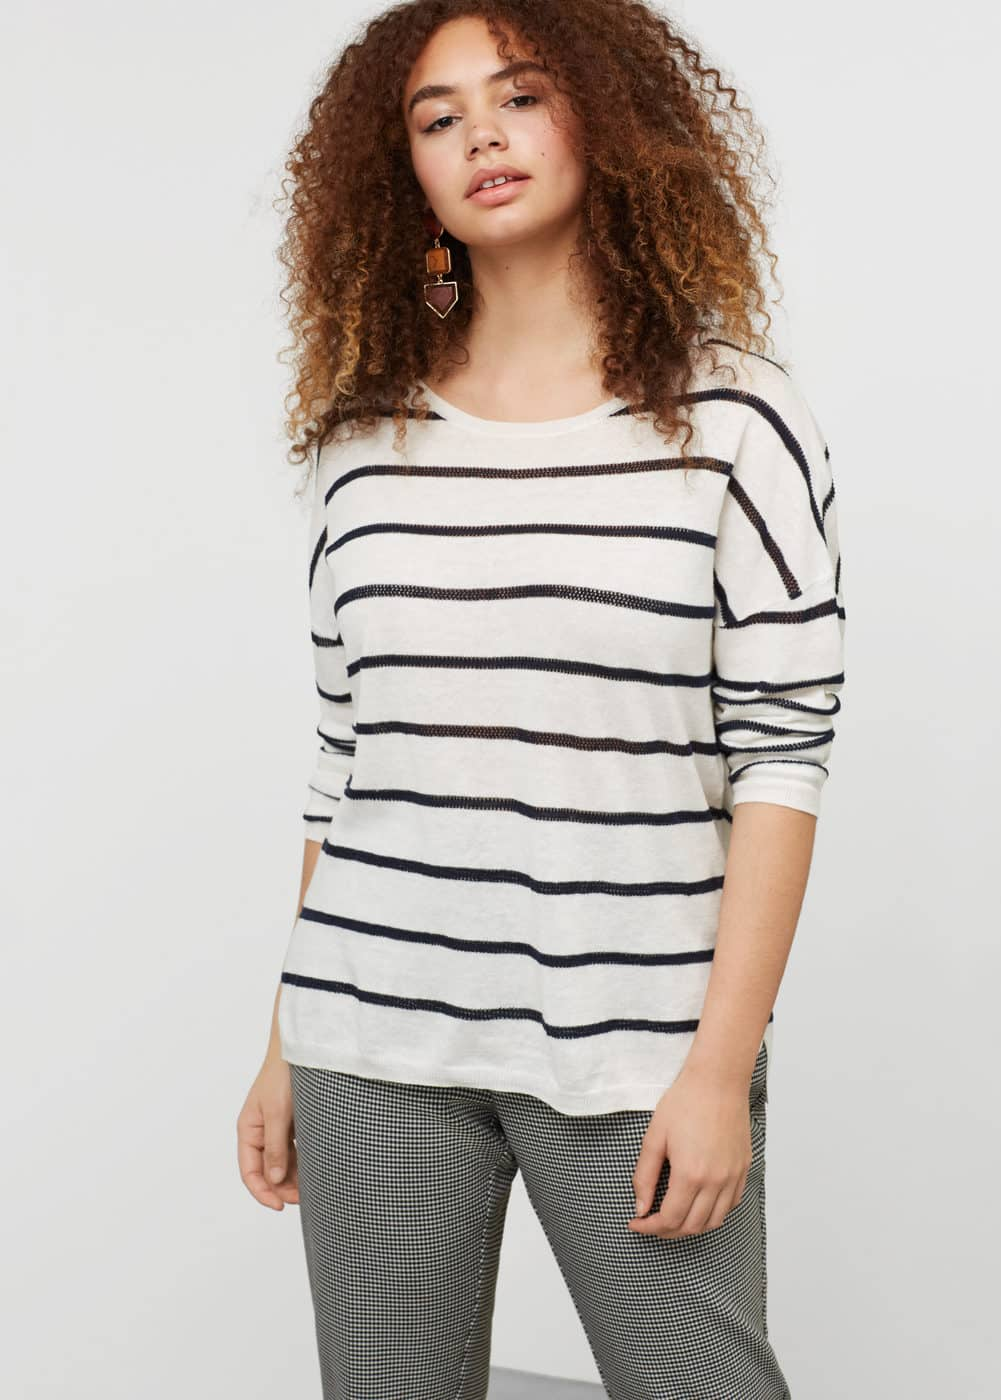 Striped cotton linen-blend sweater | VIOLETA BY MNG